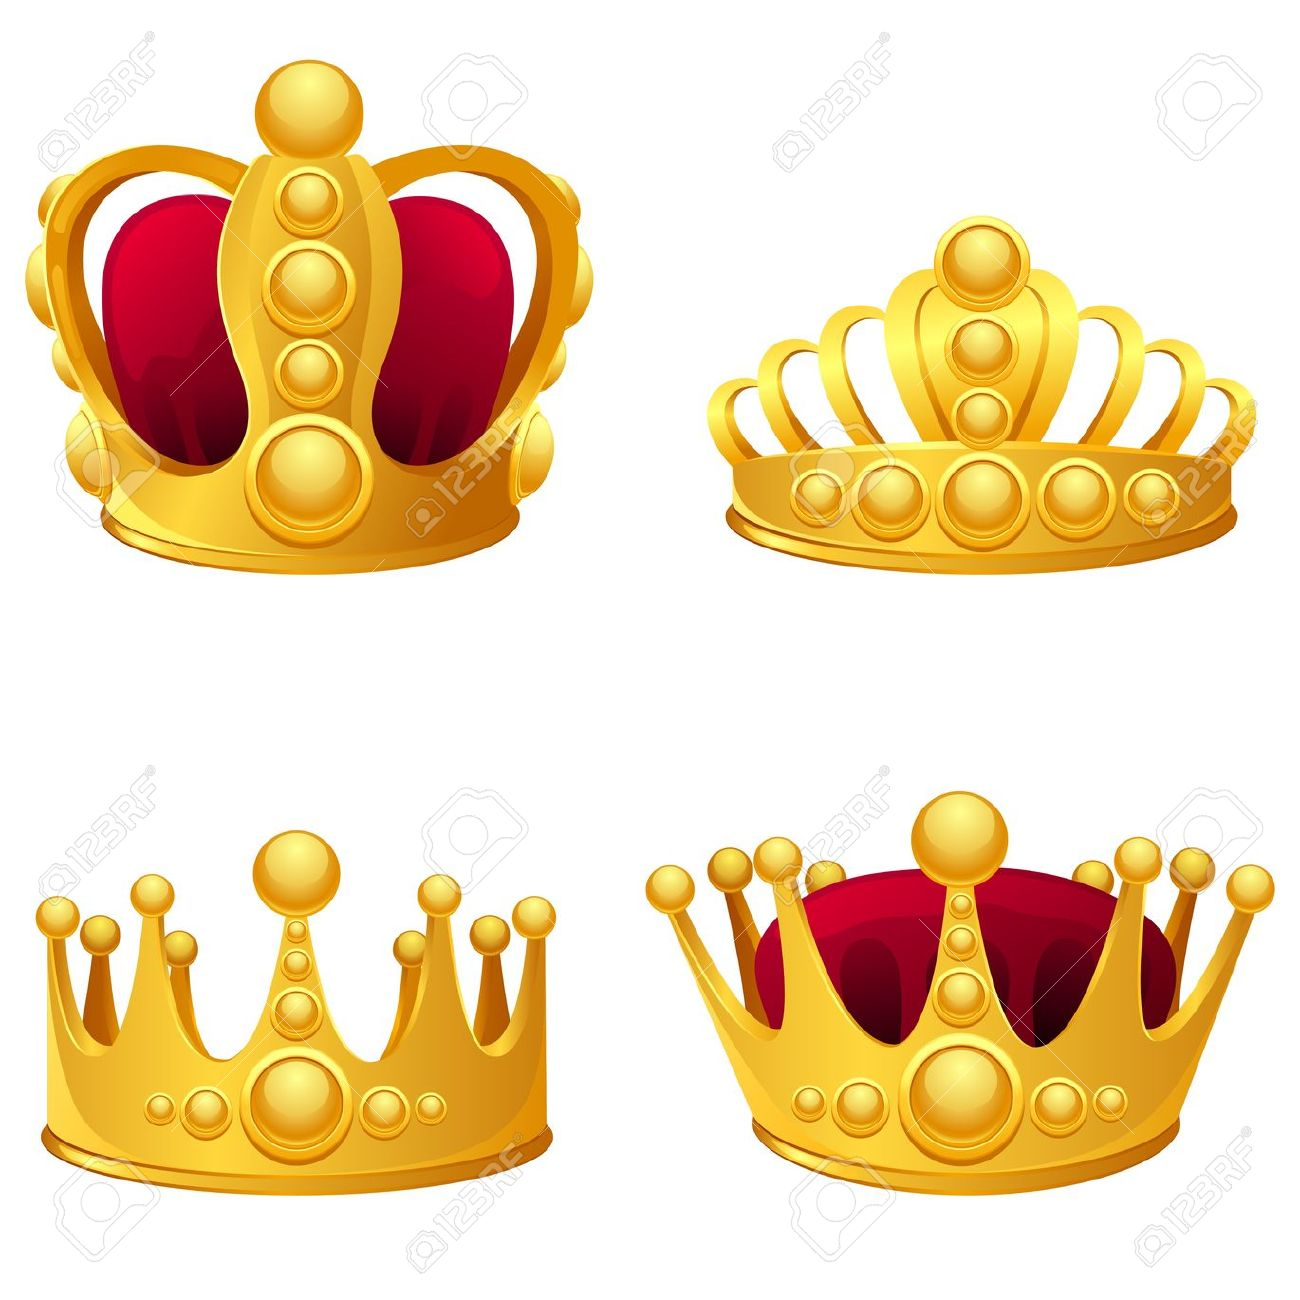 King and queen crown clip art banner freeuse King and queen crowns clipart - ClipartFest banner freeuse